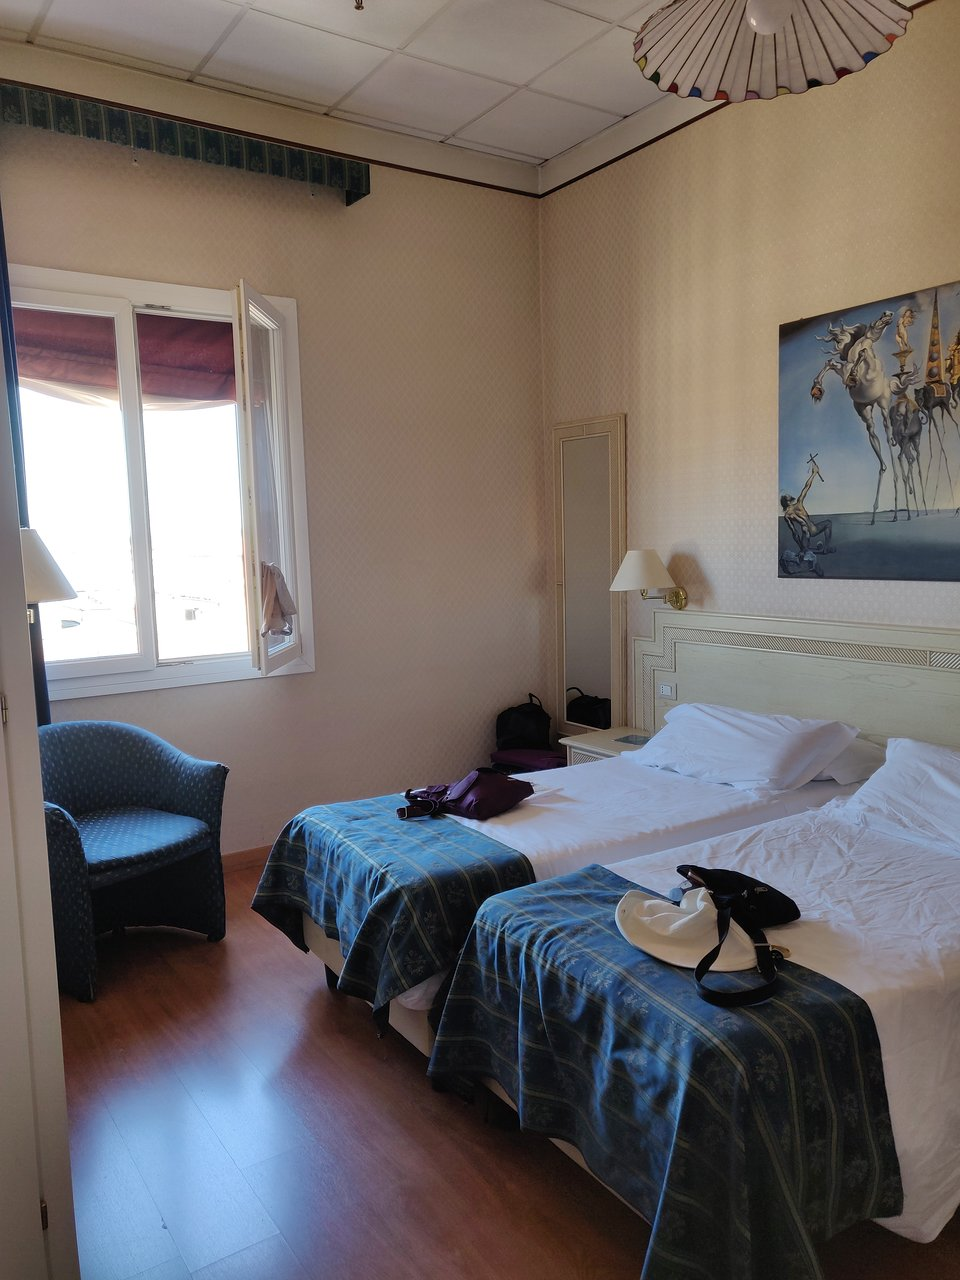 Bologna Centrale Updated 2019 Bb Reviews Italy